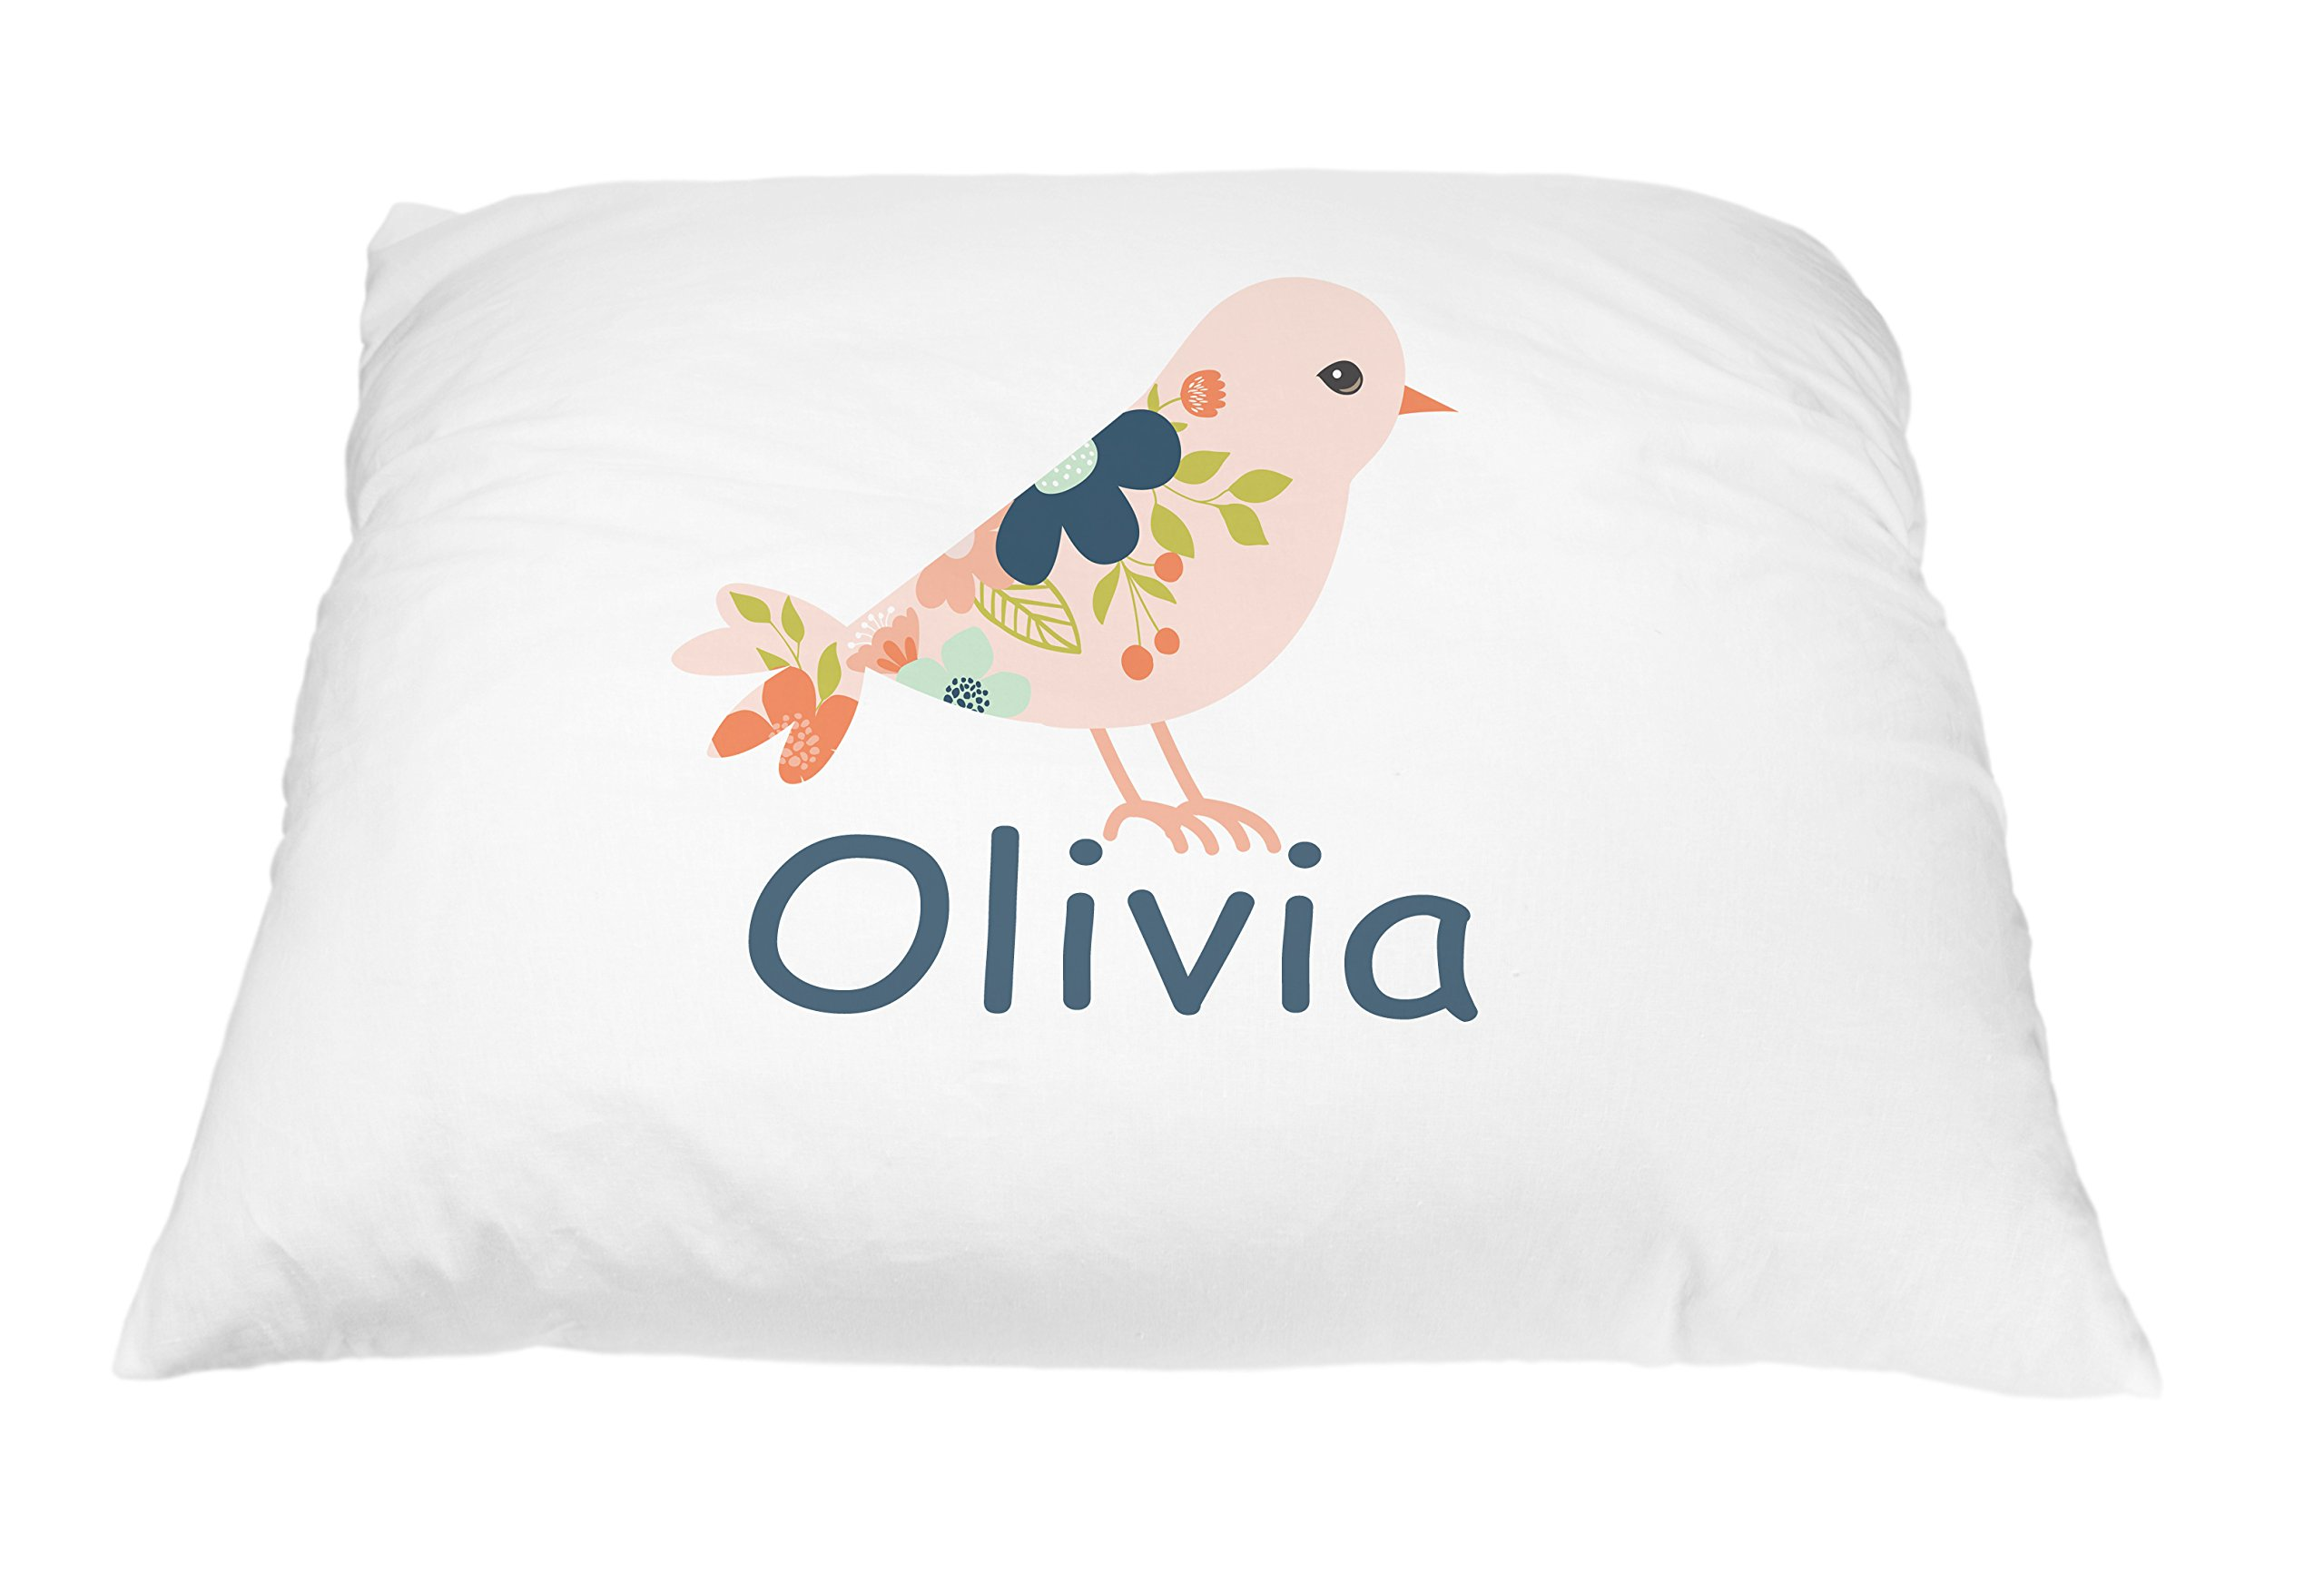 Personalized Kid's Coral Bird Pillowcase Microfiber Polyester 20 by 30 Inches, Bird Pillow Cover, Customized Gifts For Kids, Nature Pillow, Bird Gift for Nature Lovers, Gift for Bird Lovers